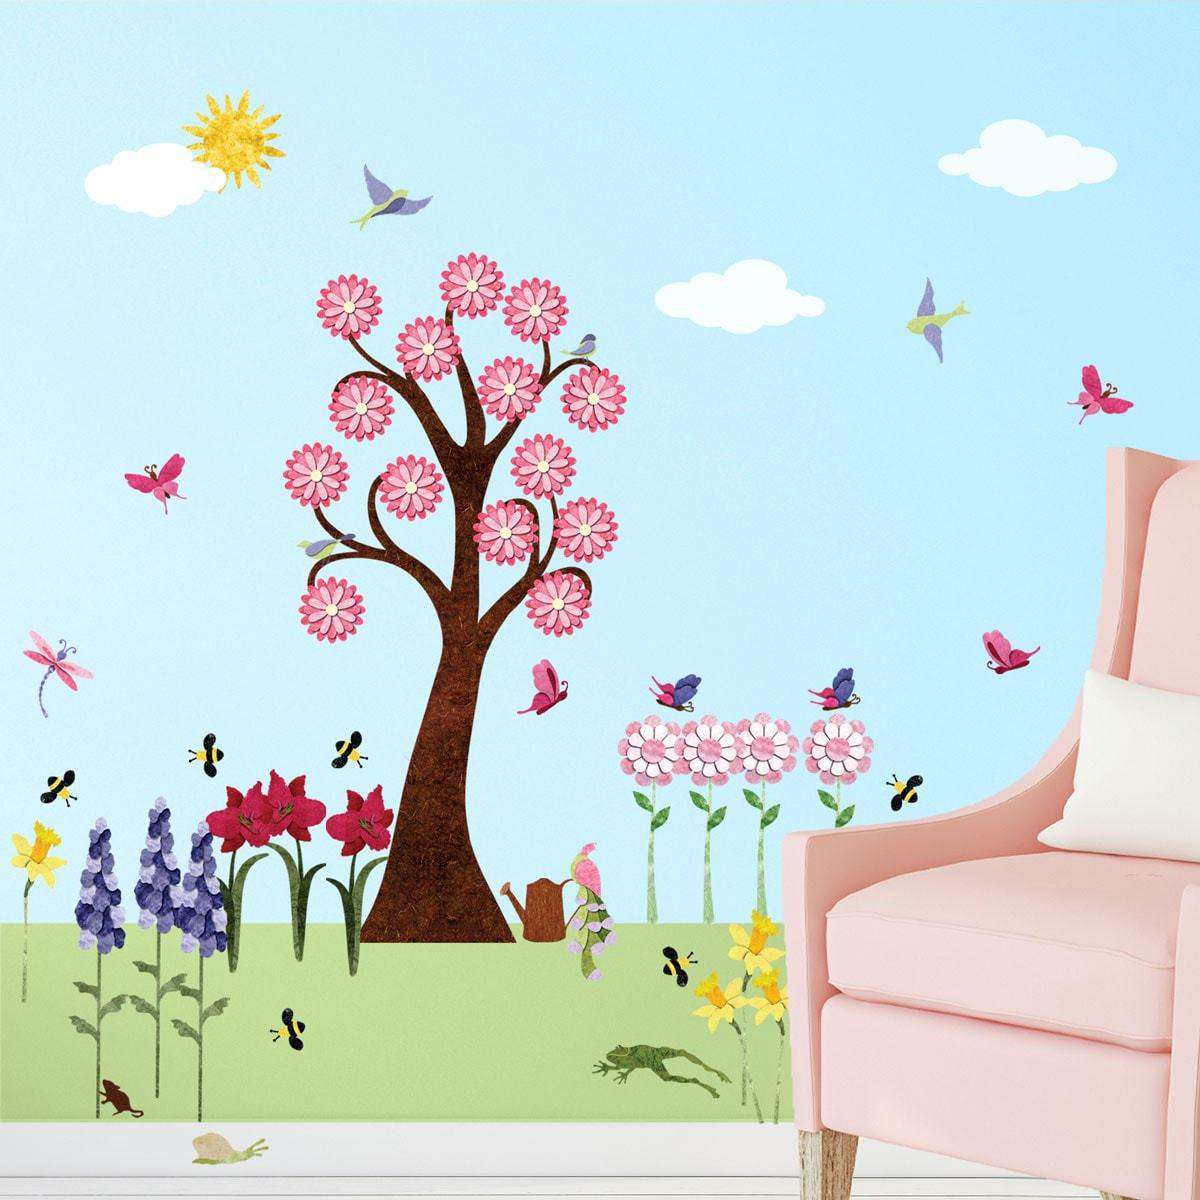 Flower Wall Decals For Girls Room U2013 Peel U0026 Stick Flower Stickers U0026 Large  Tree Decal